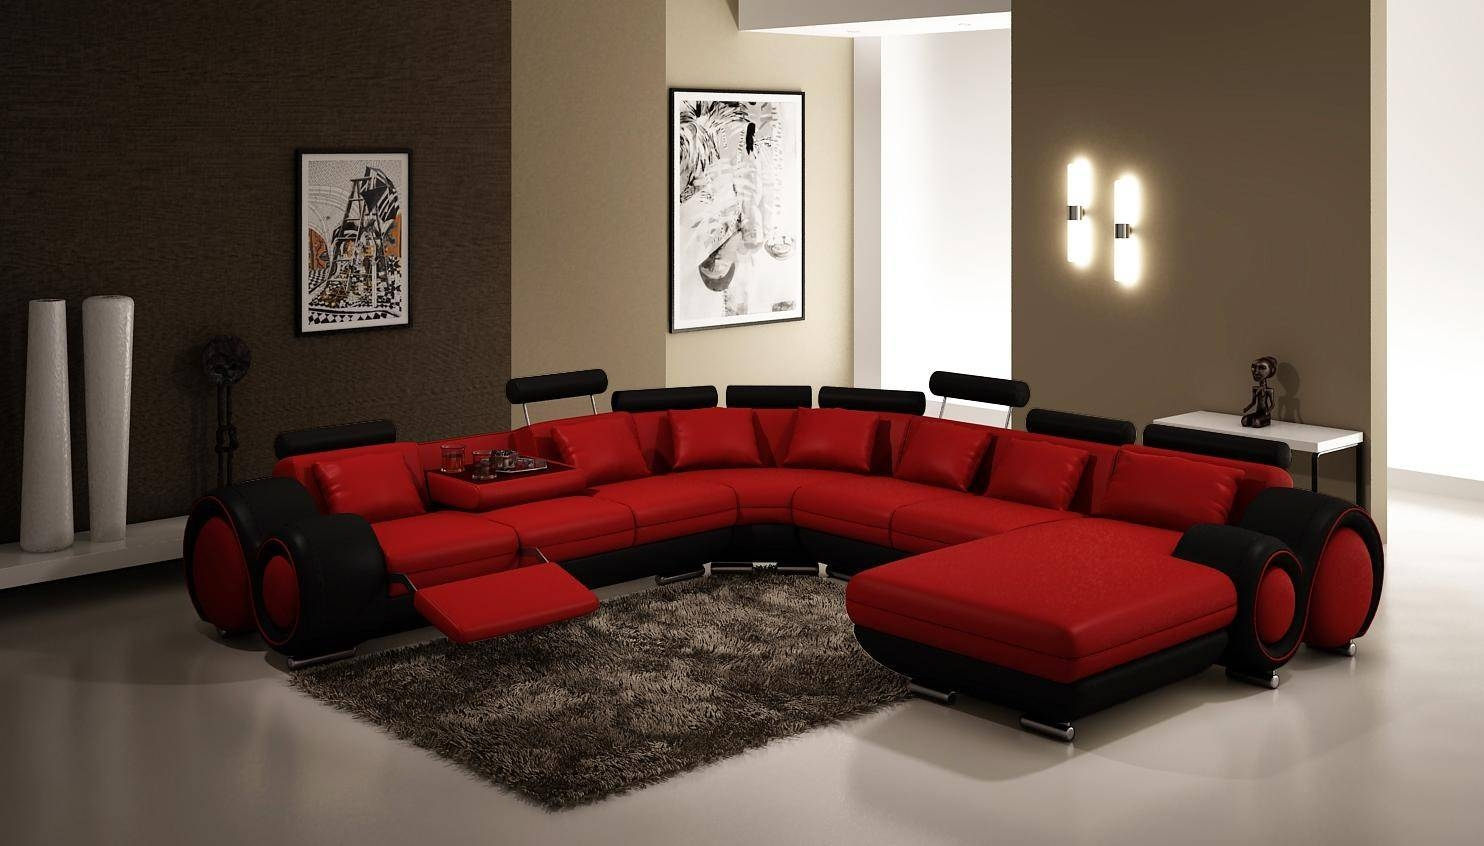 Furniture 4084 Contemporary Red And Black Sectional Sofa regarding Red Black Sectional Sofa (Image 12 of 30)